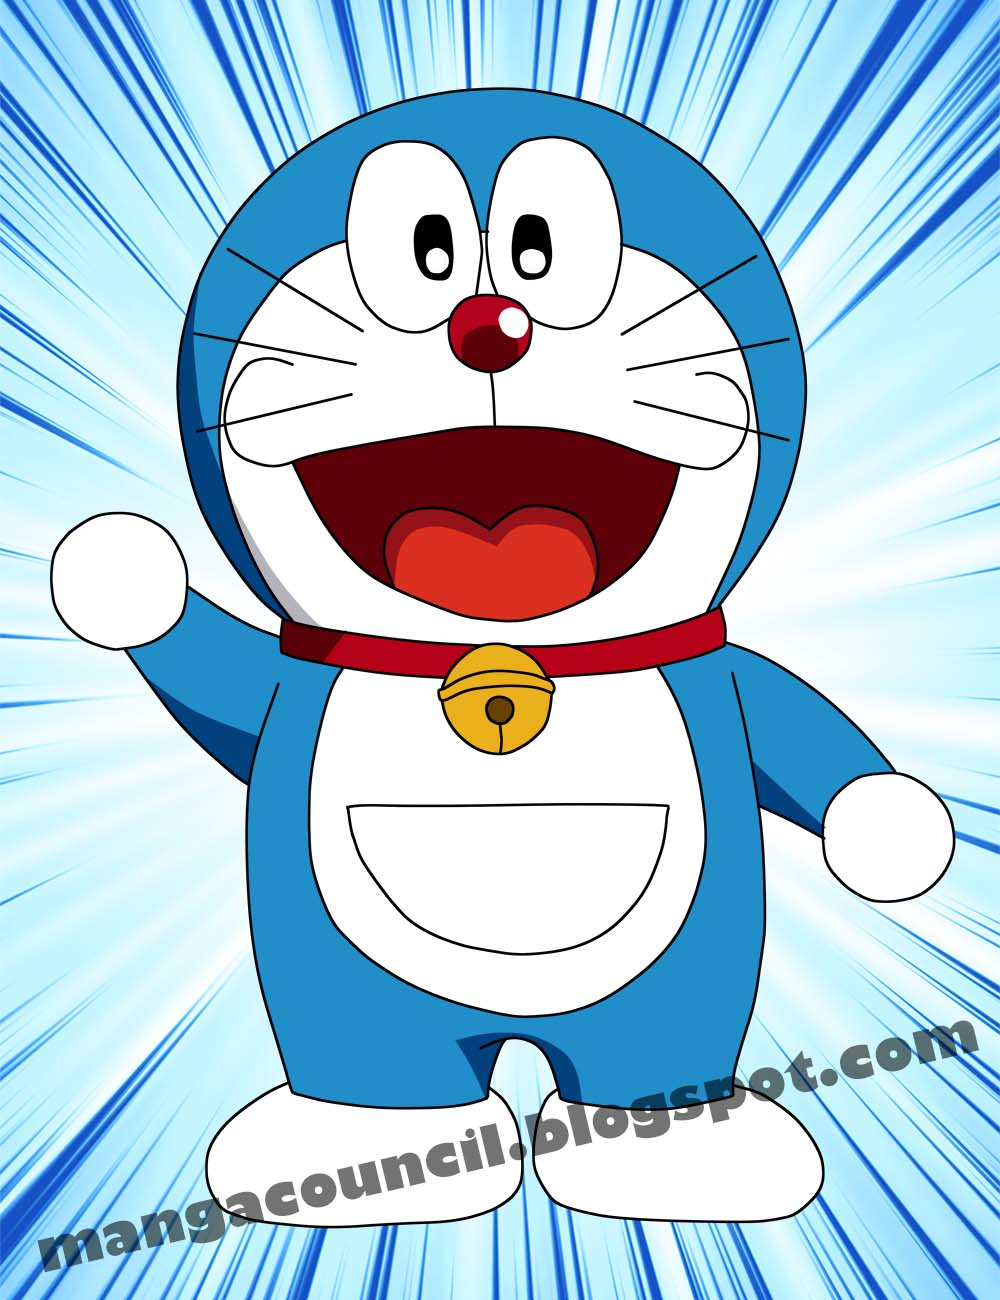 Download 8200 Koleksi Gambar Doraemon Lucu Simple Gratis